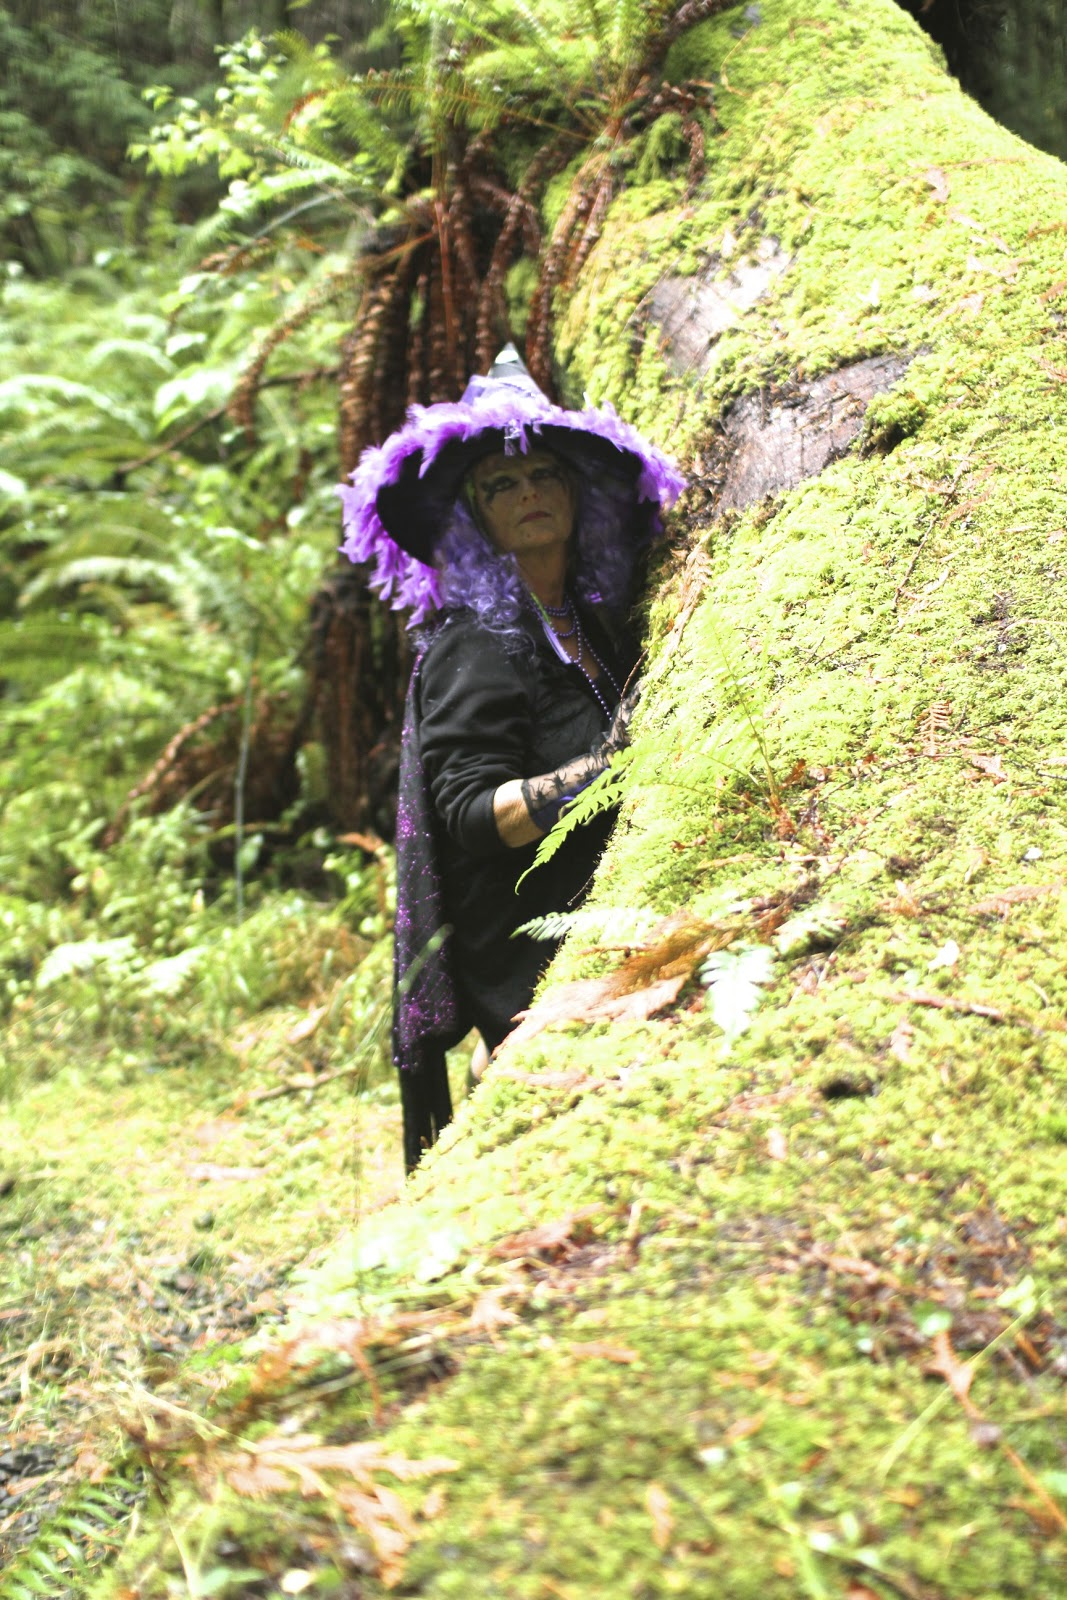 The Woods Wood Be Quiet If No Birds Sang Except The Best: Witches In The Woods By Lisarey Photography: Gabriola